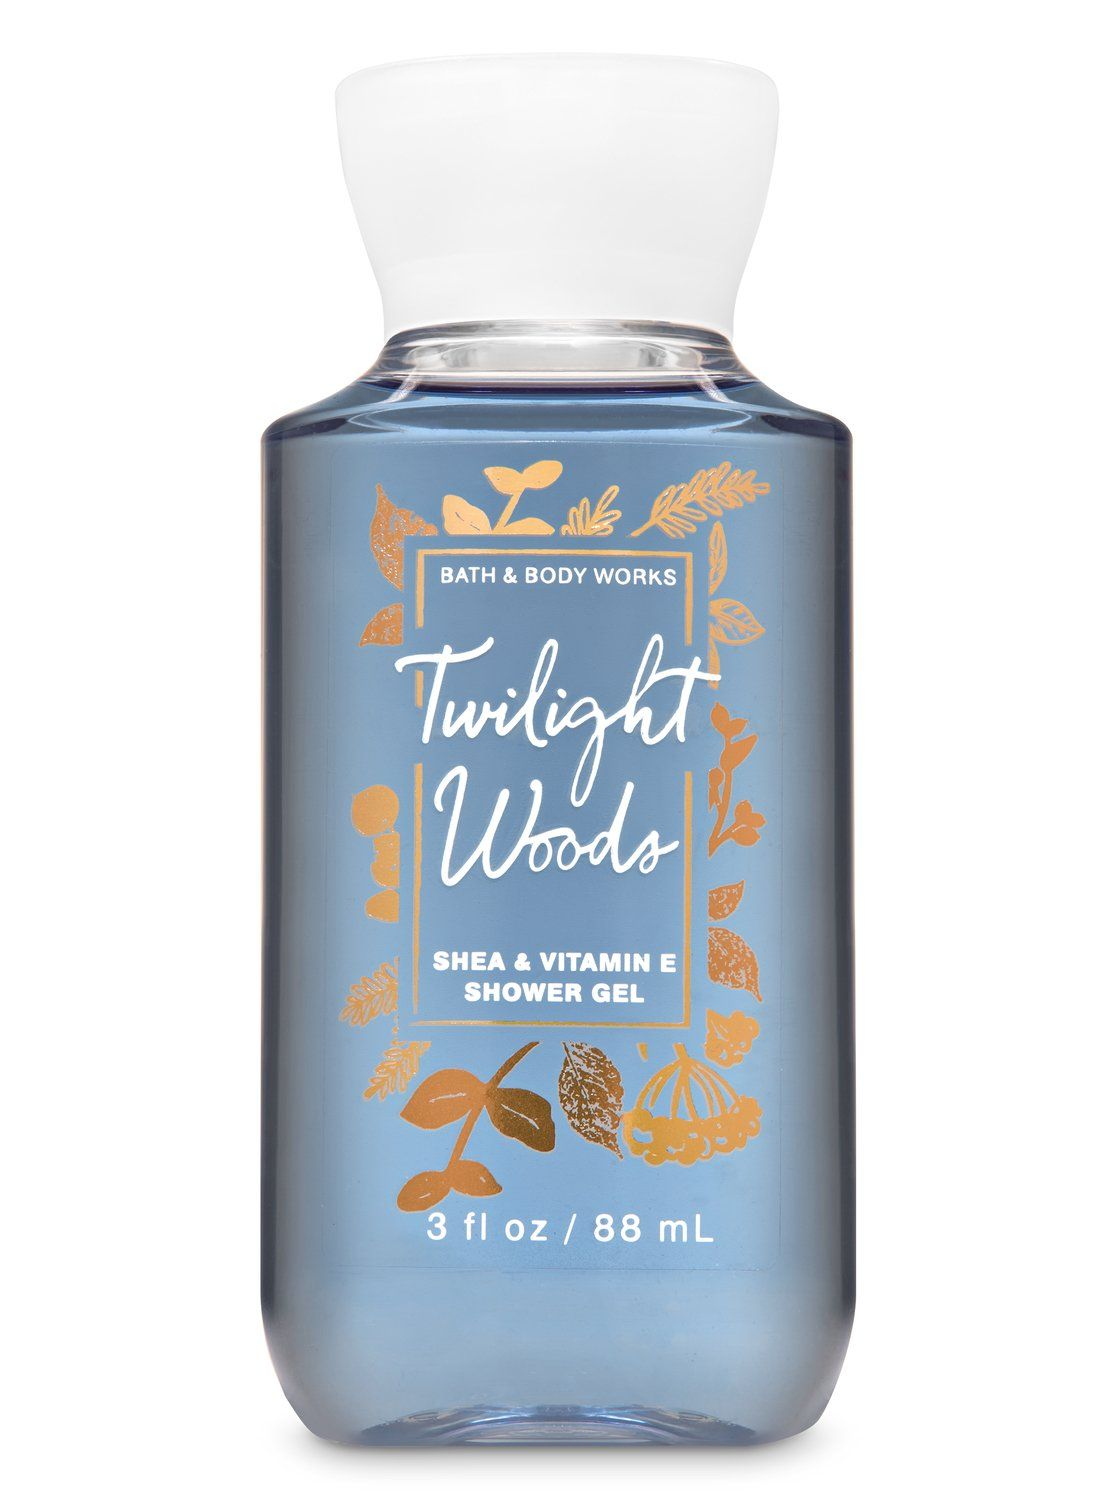 Twilight Woods Travel Size Shower Gel Bath And Body Works Big Clearancesale 3days Only All 1 99 In 2020 Bath And Body Works Shower Gel Bath And Body